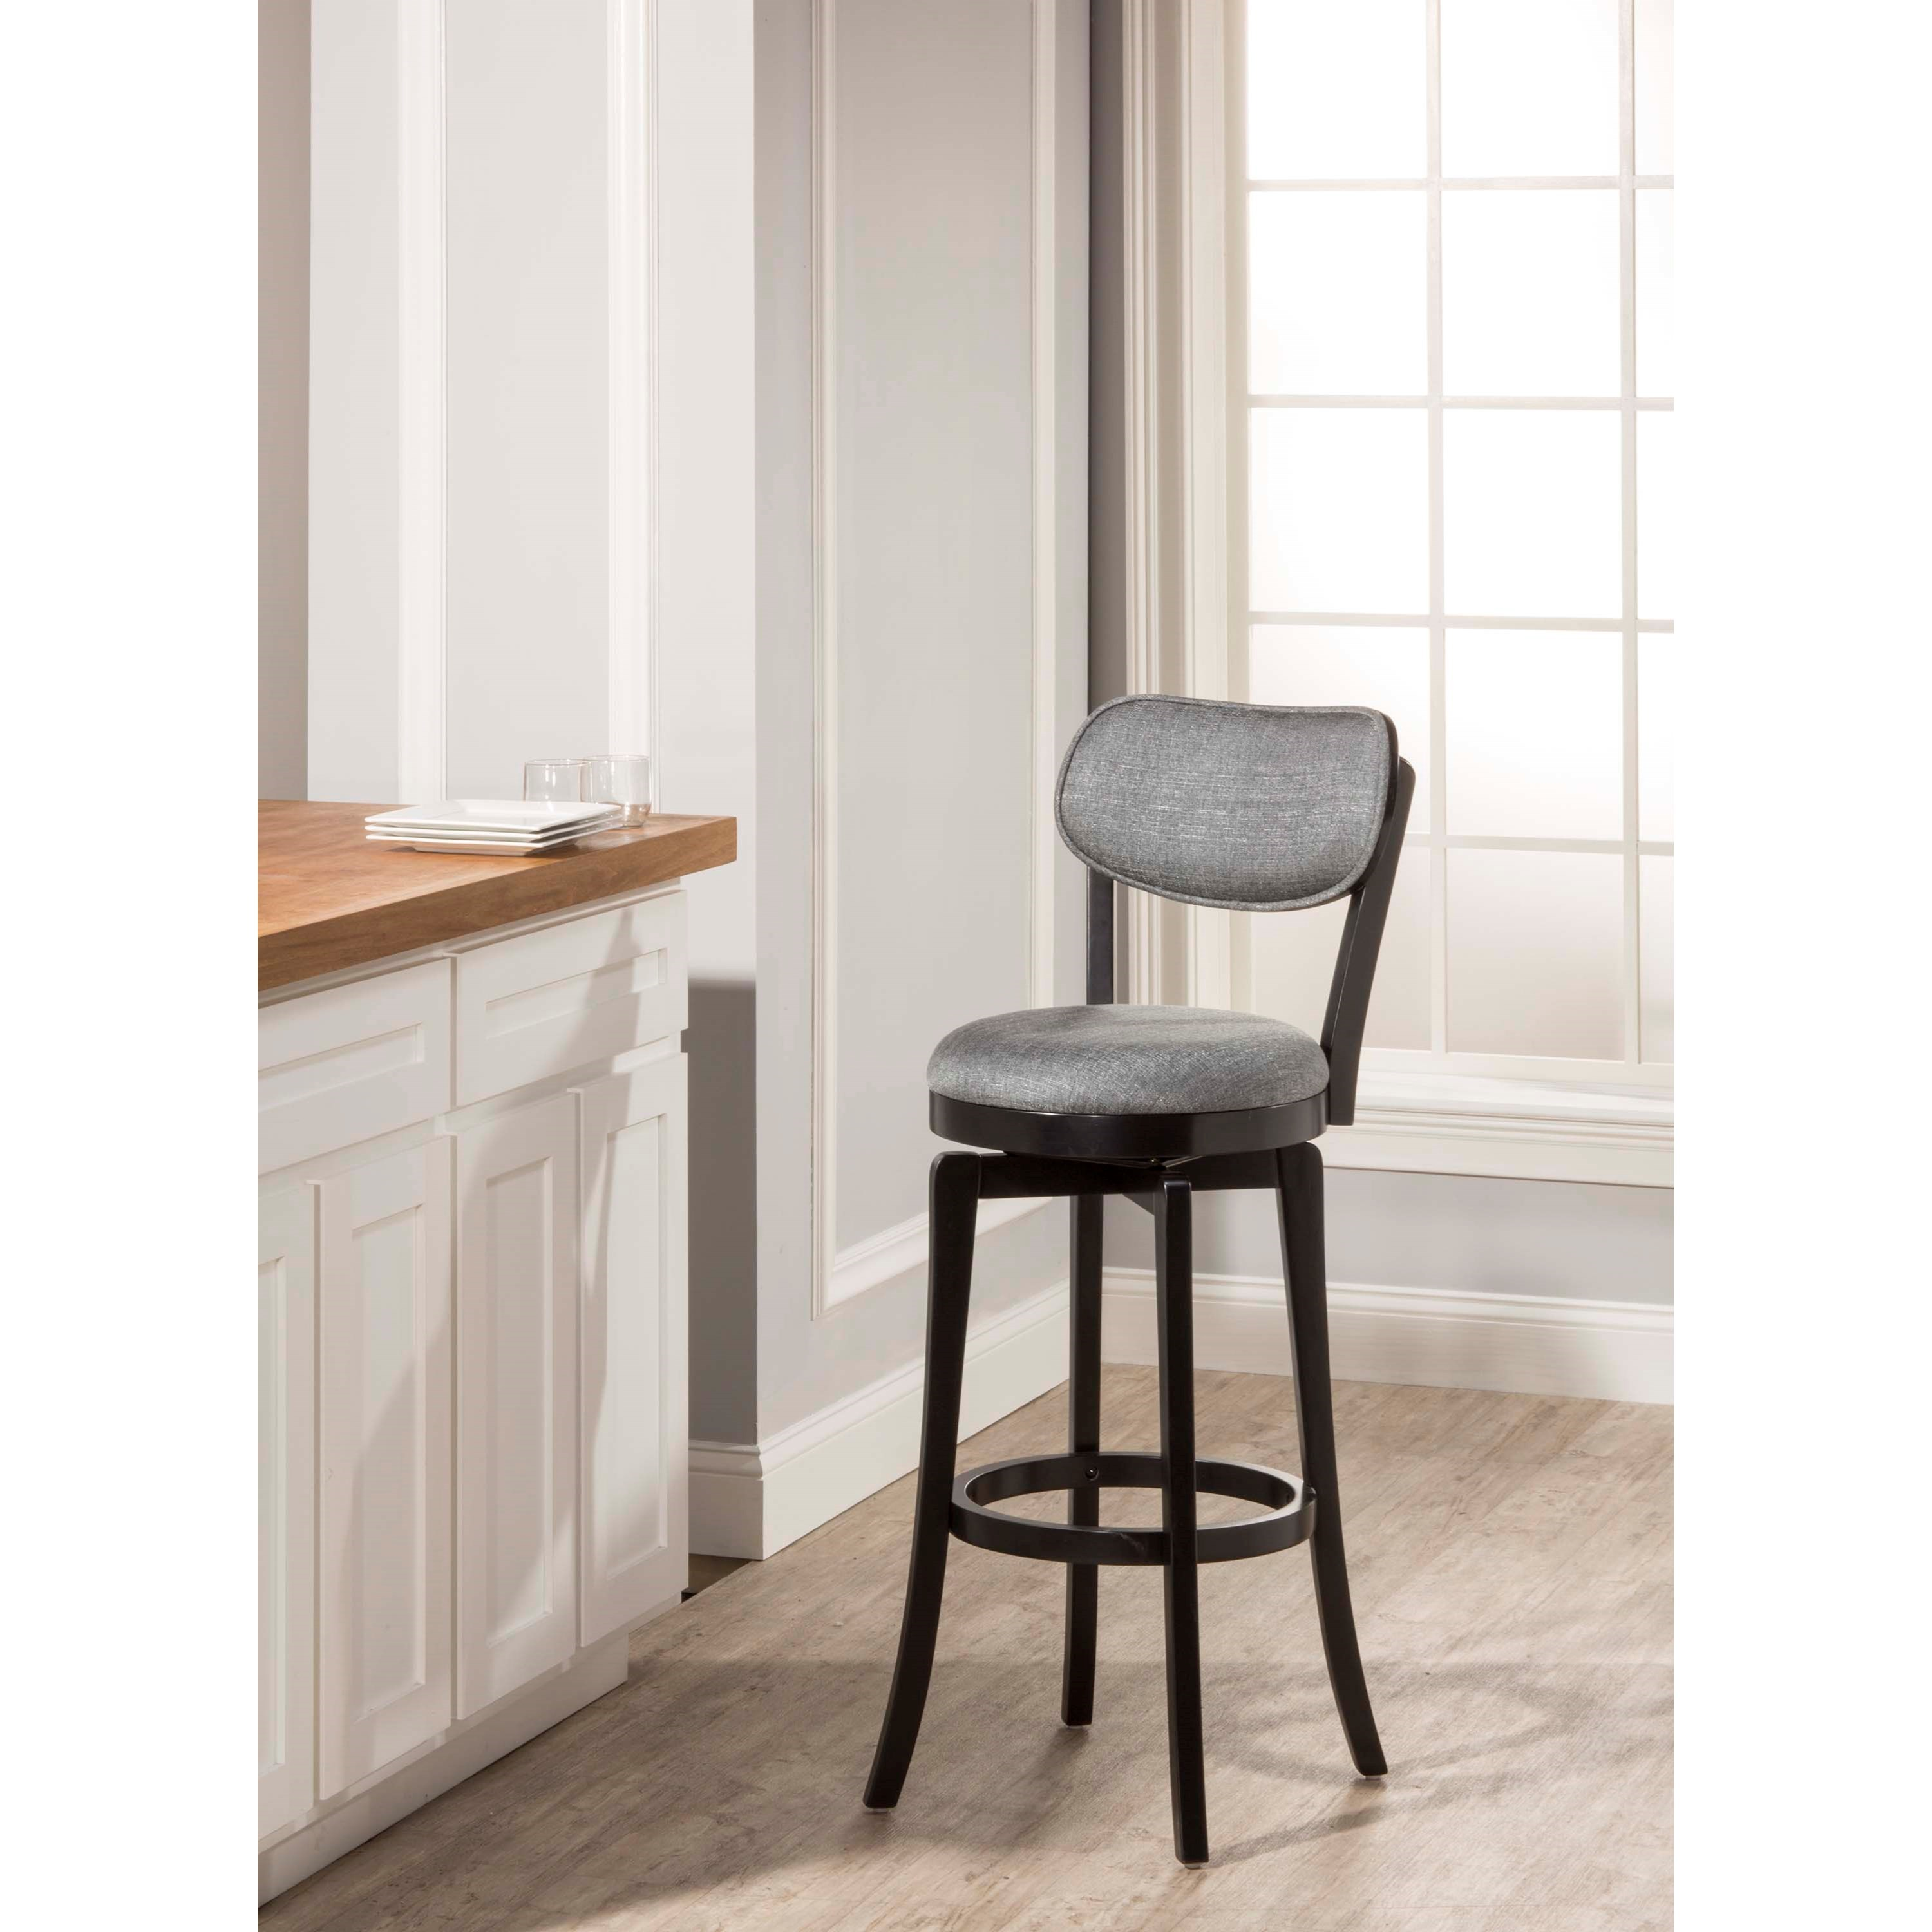 Hillsdale Wood Stools Swivel Bar Stool With Gray Full Back